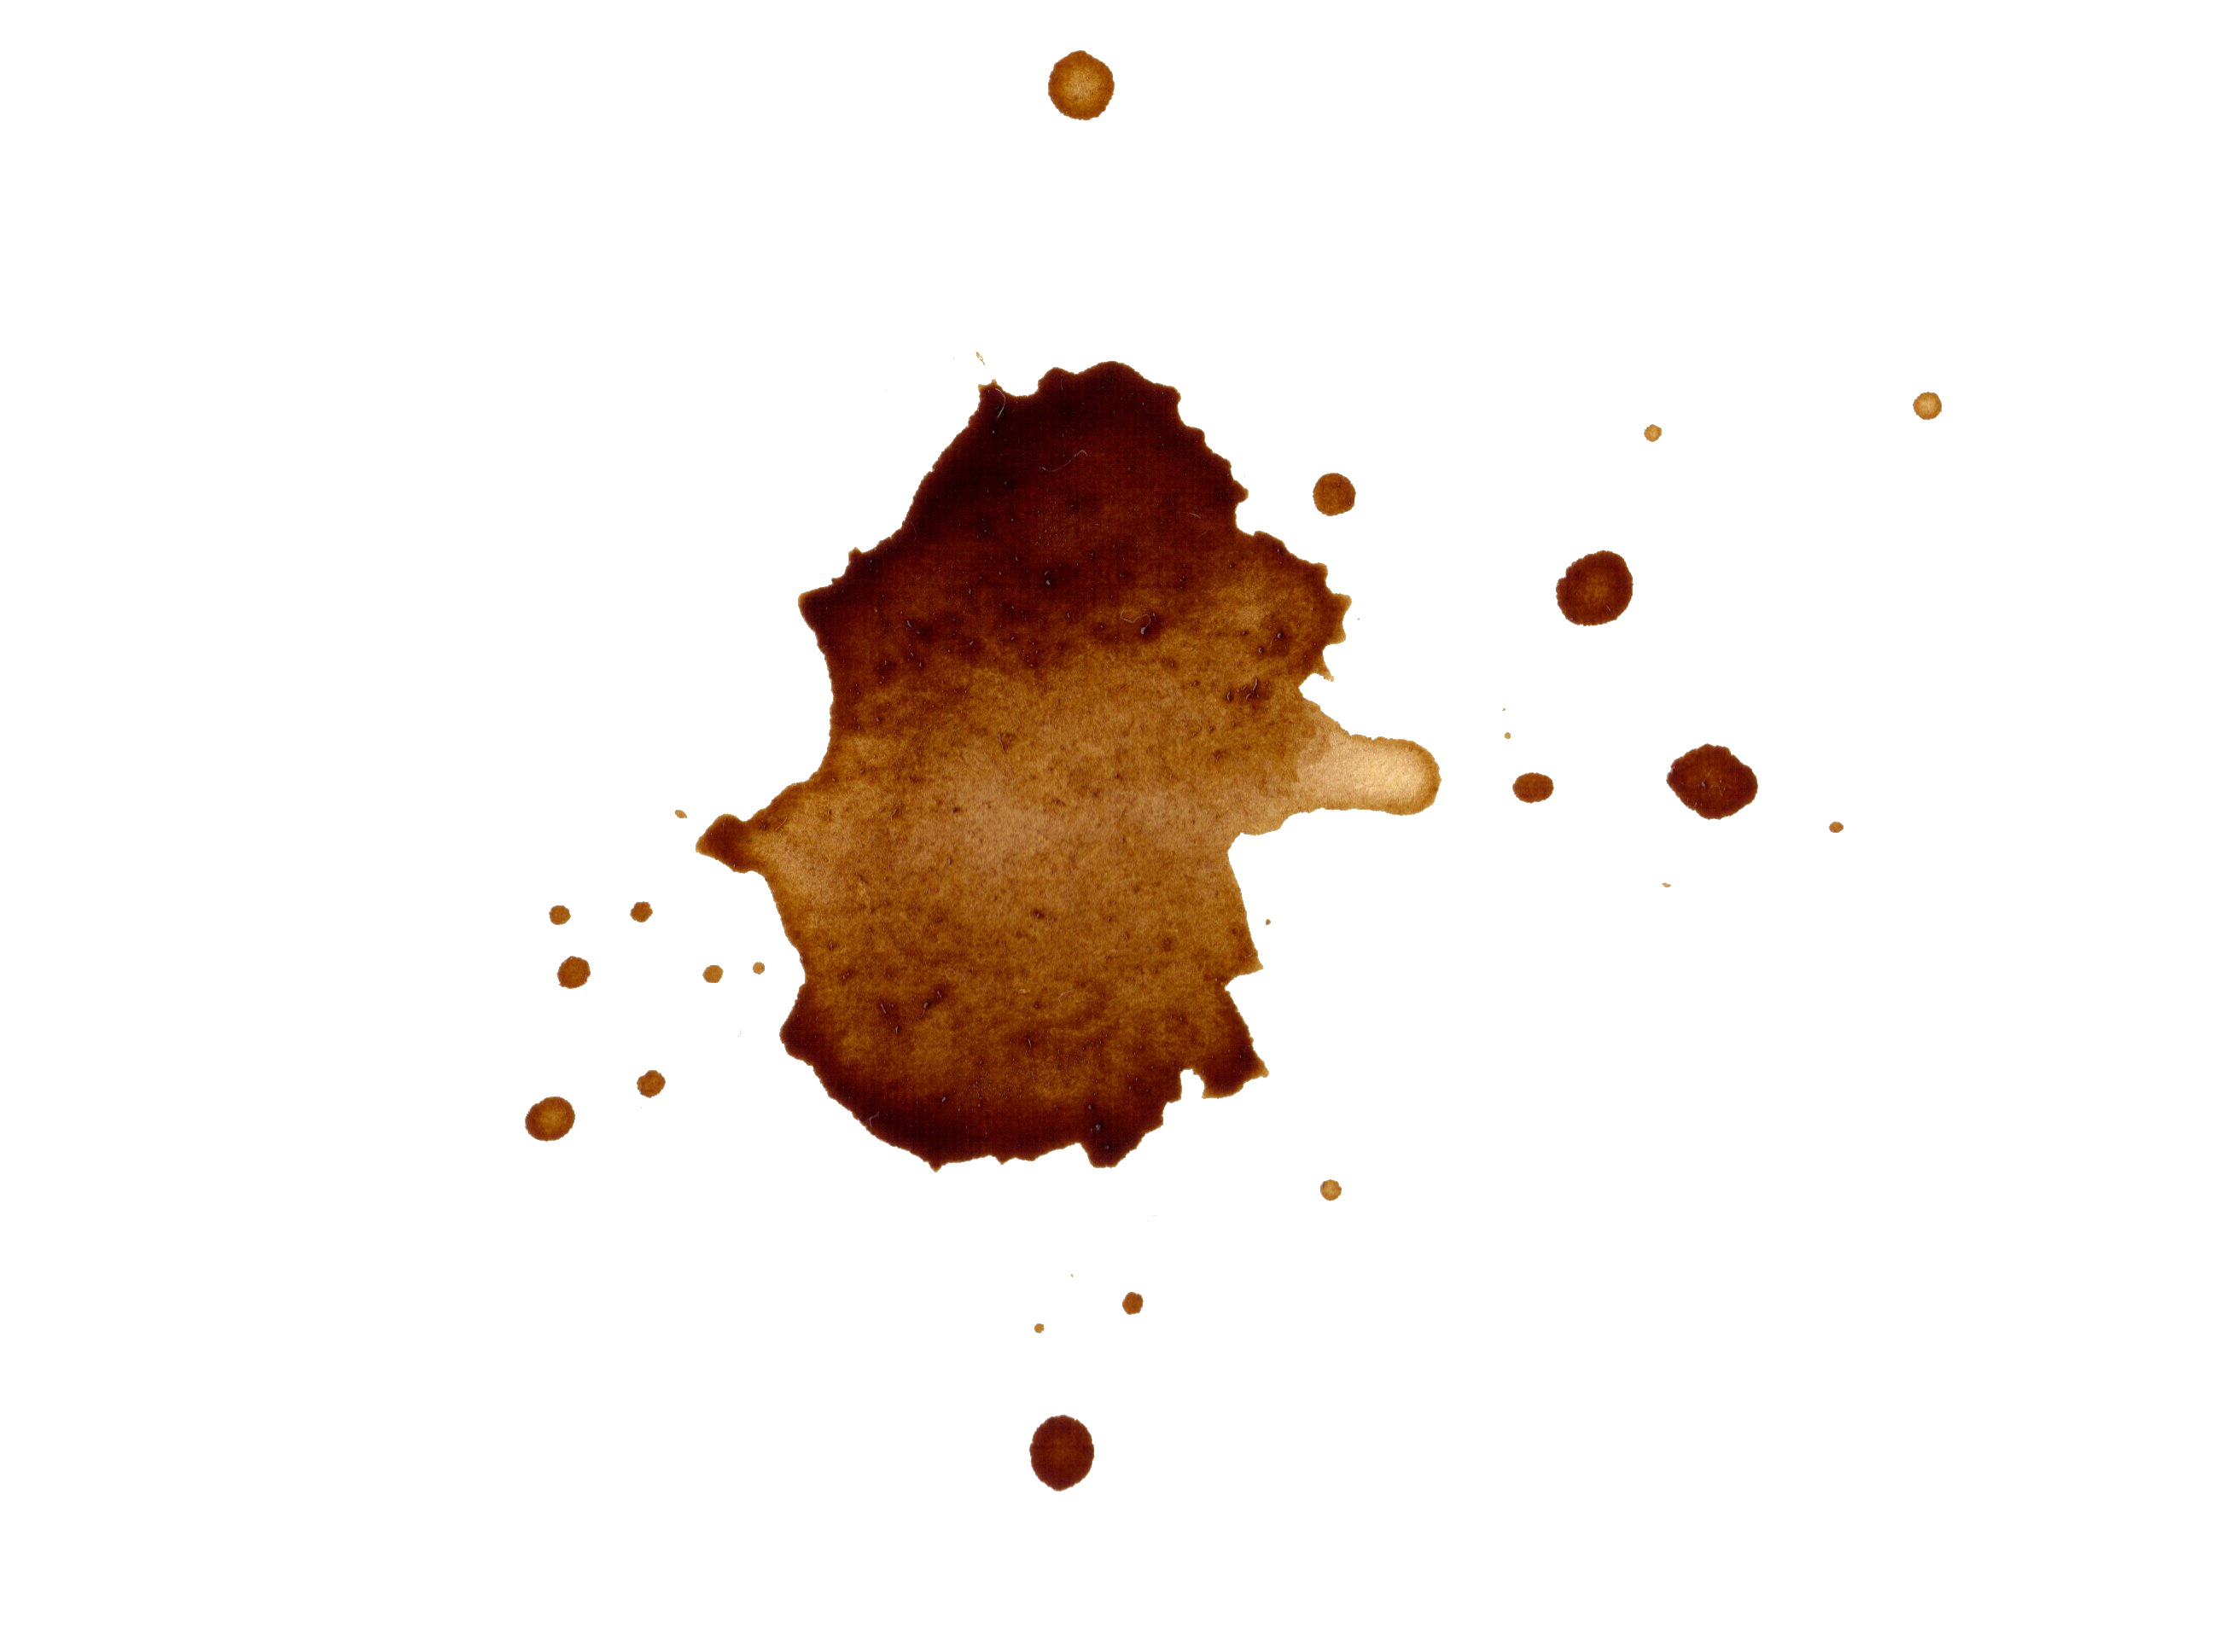 Coffee spill png. Stains splatter transparent